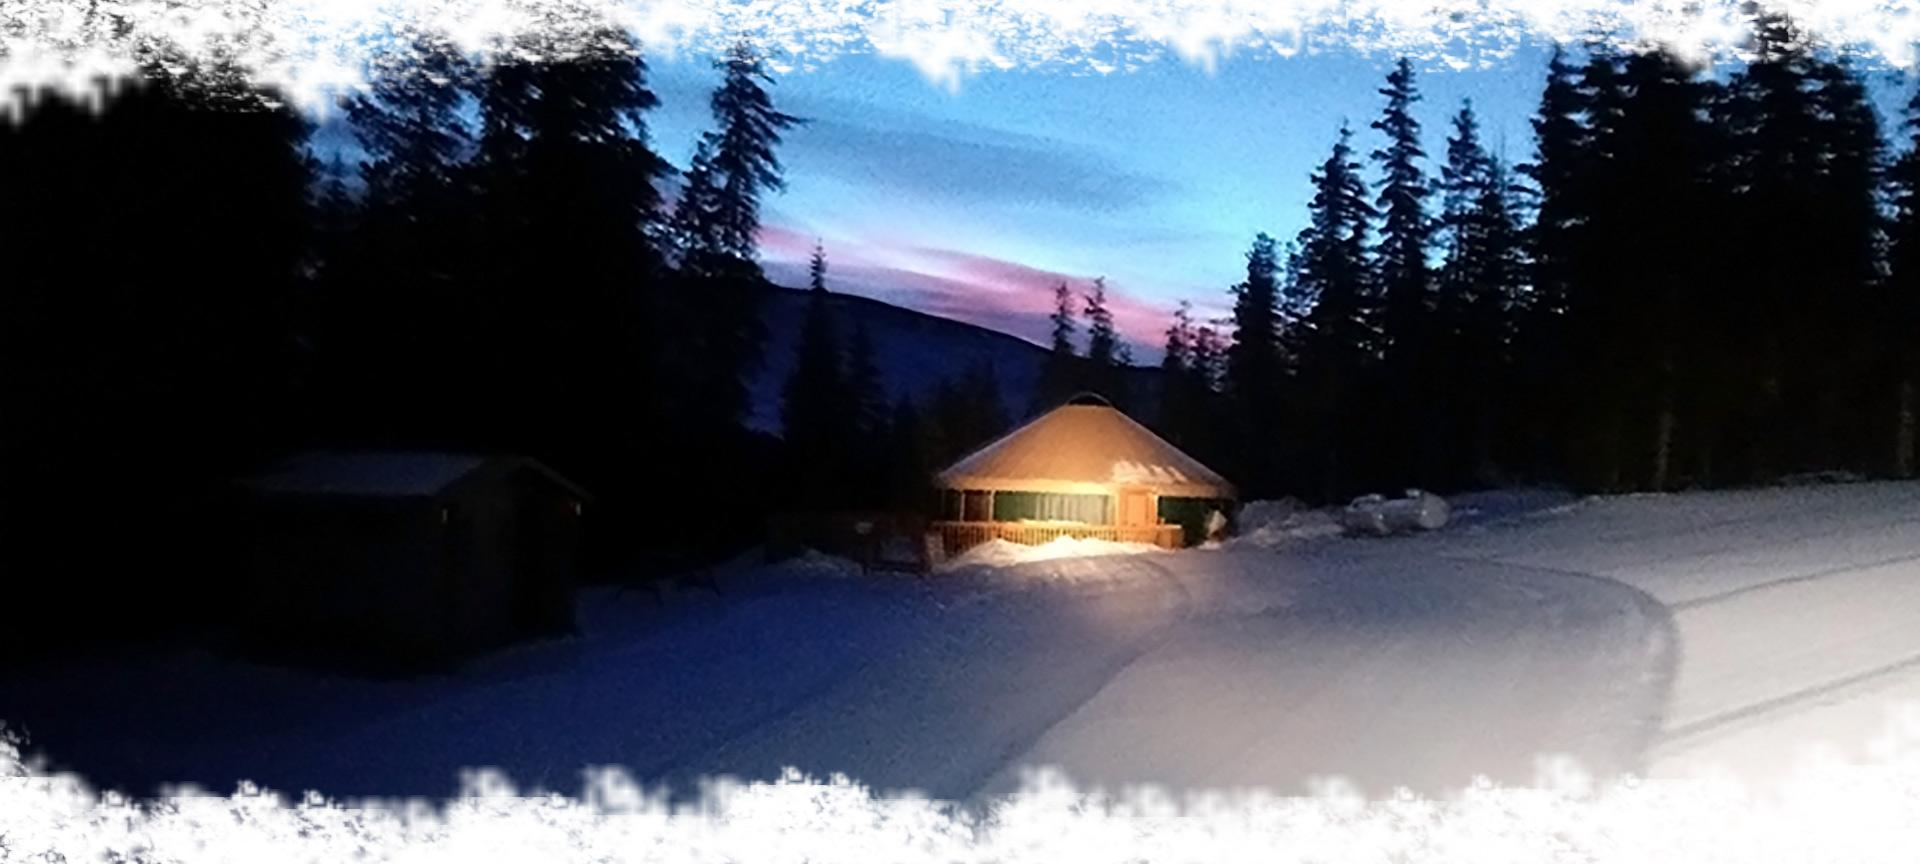 the yurt at night